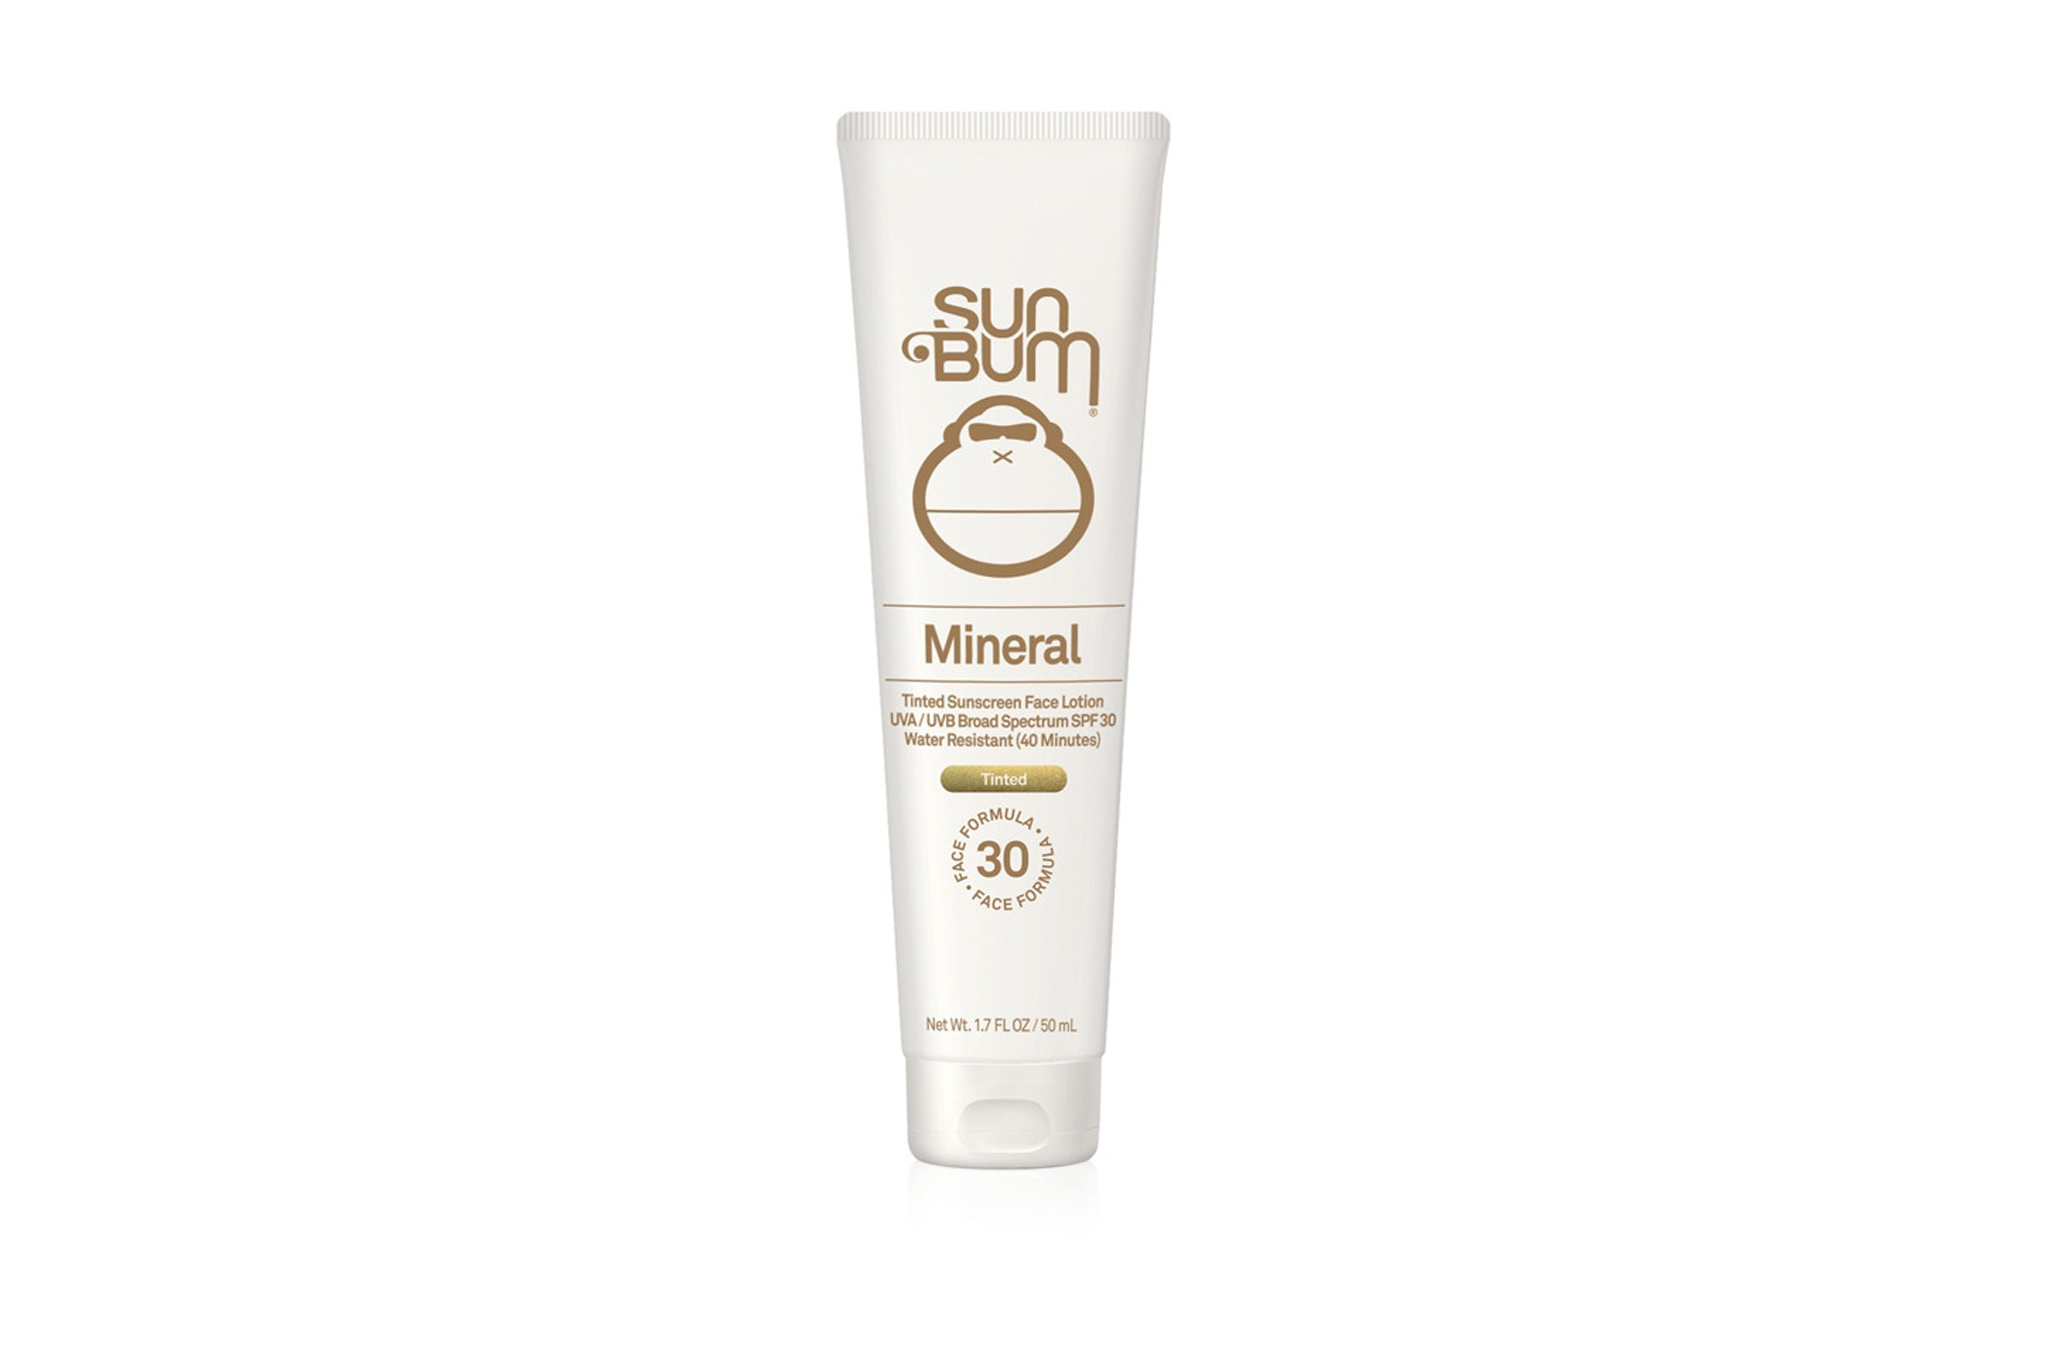 Sun Bum Mineral Sunscreen Face Tint SPF 30